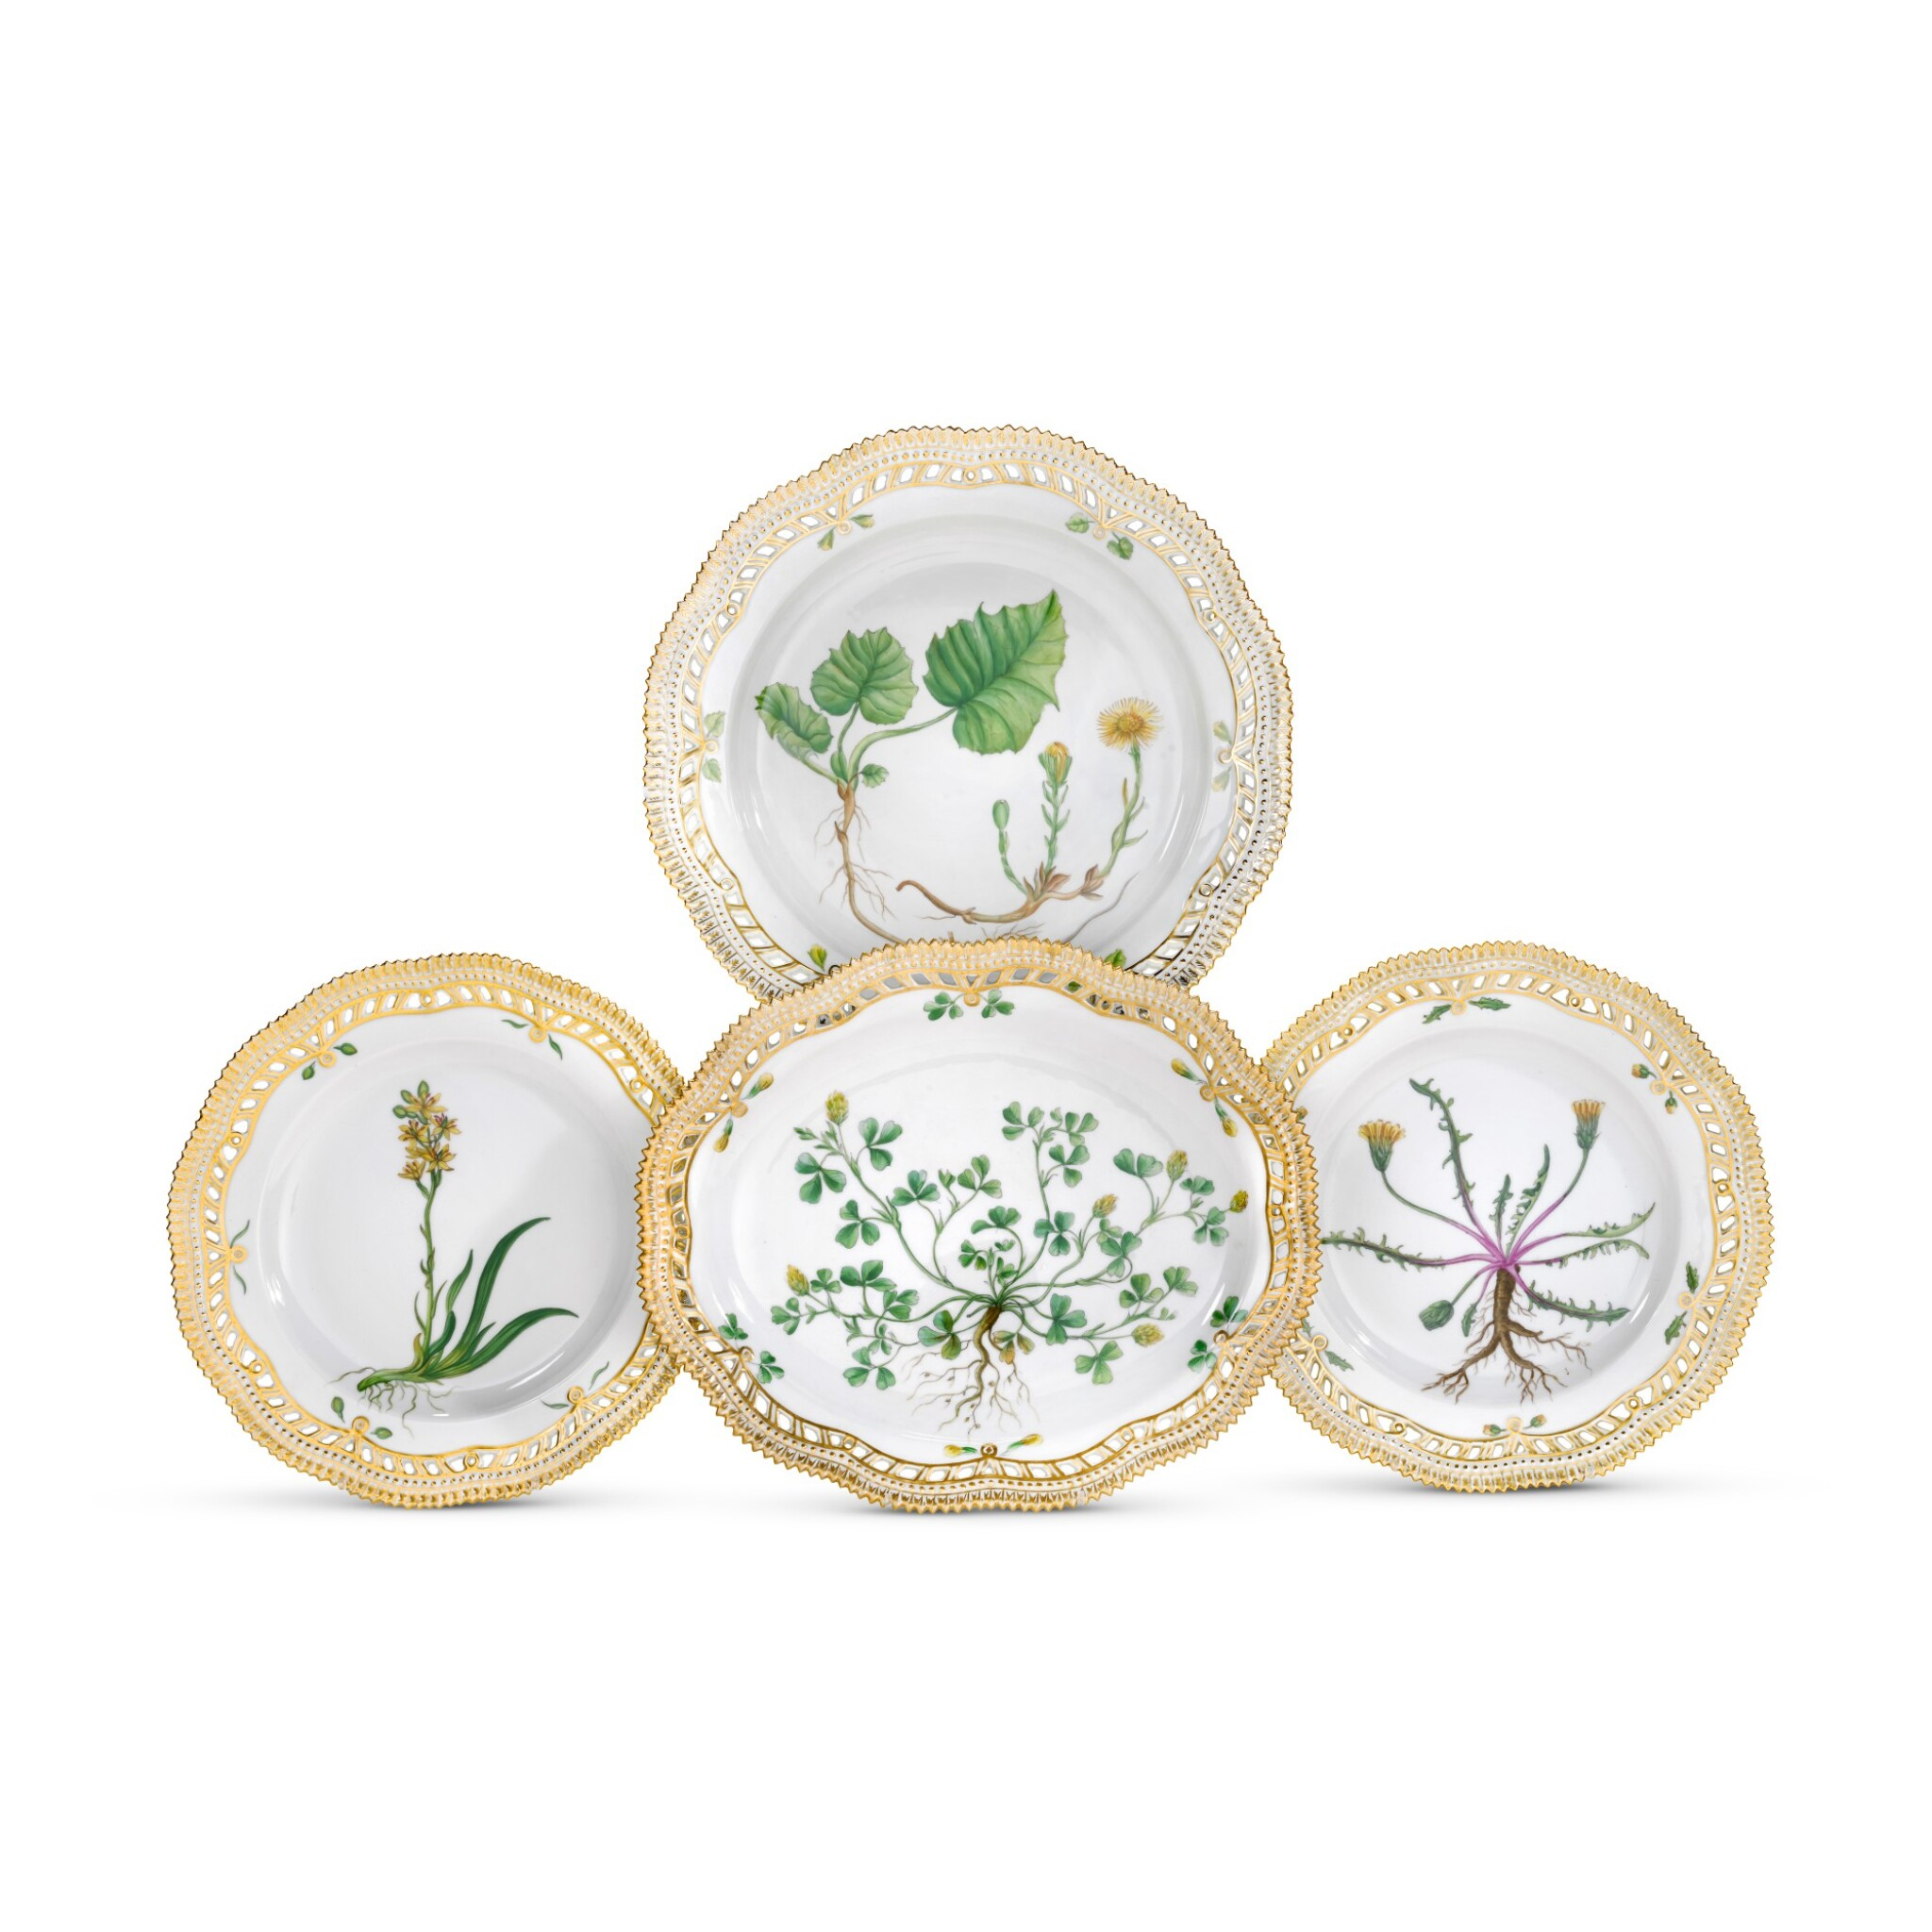 View full screen - View 1 of Lot 46. A ROYAL COPENHAGEN 'FLORA DANICA' PART SERVICE AND A BING & GRONDHAL PART DINNER SERVICE, 20TH CENTURY.